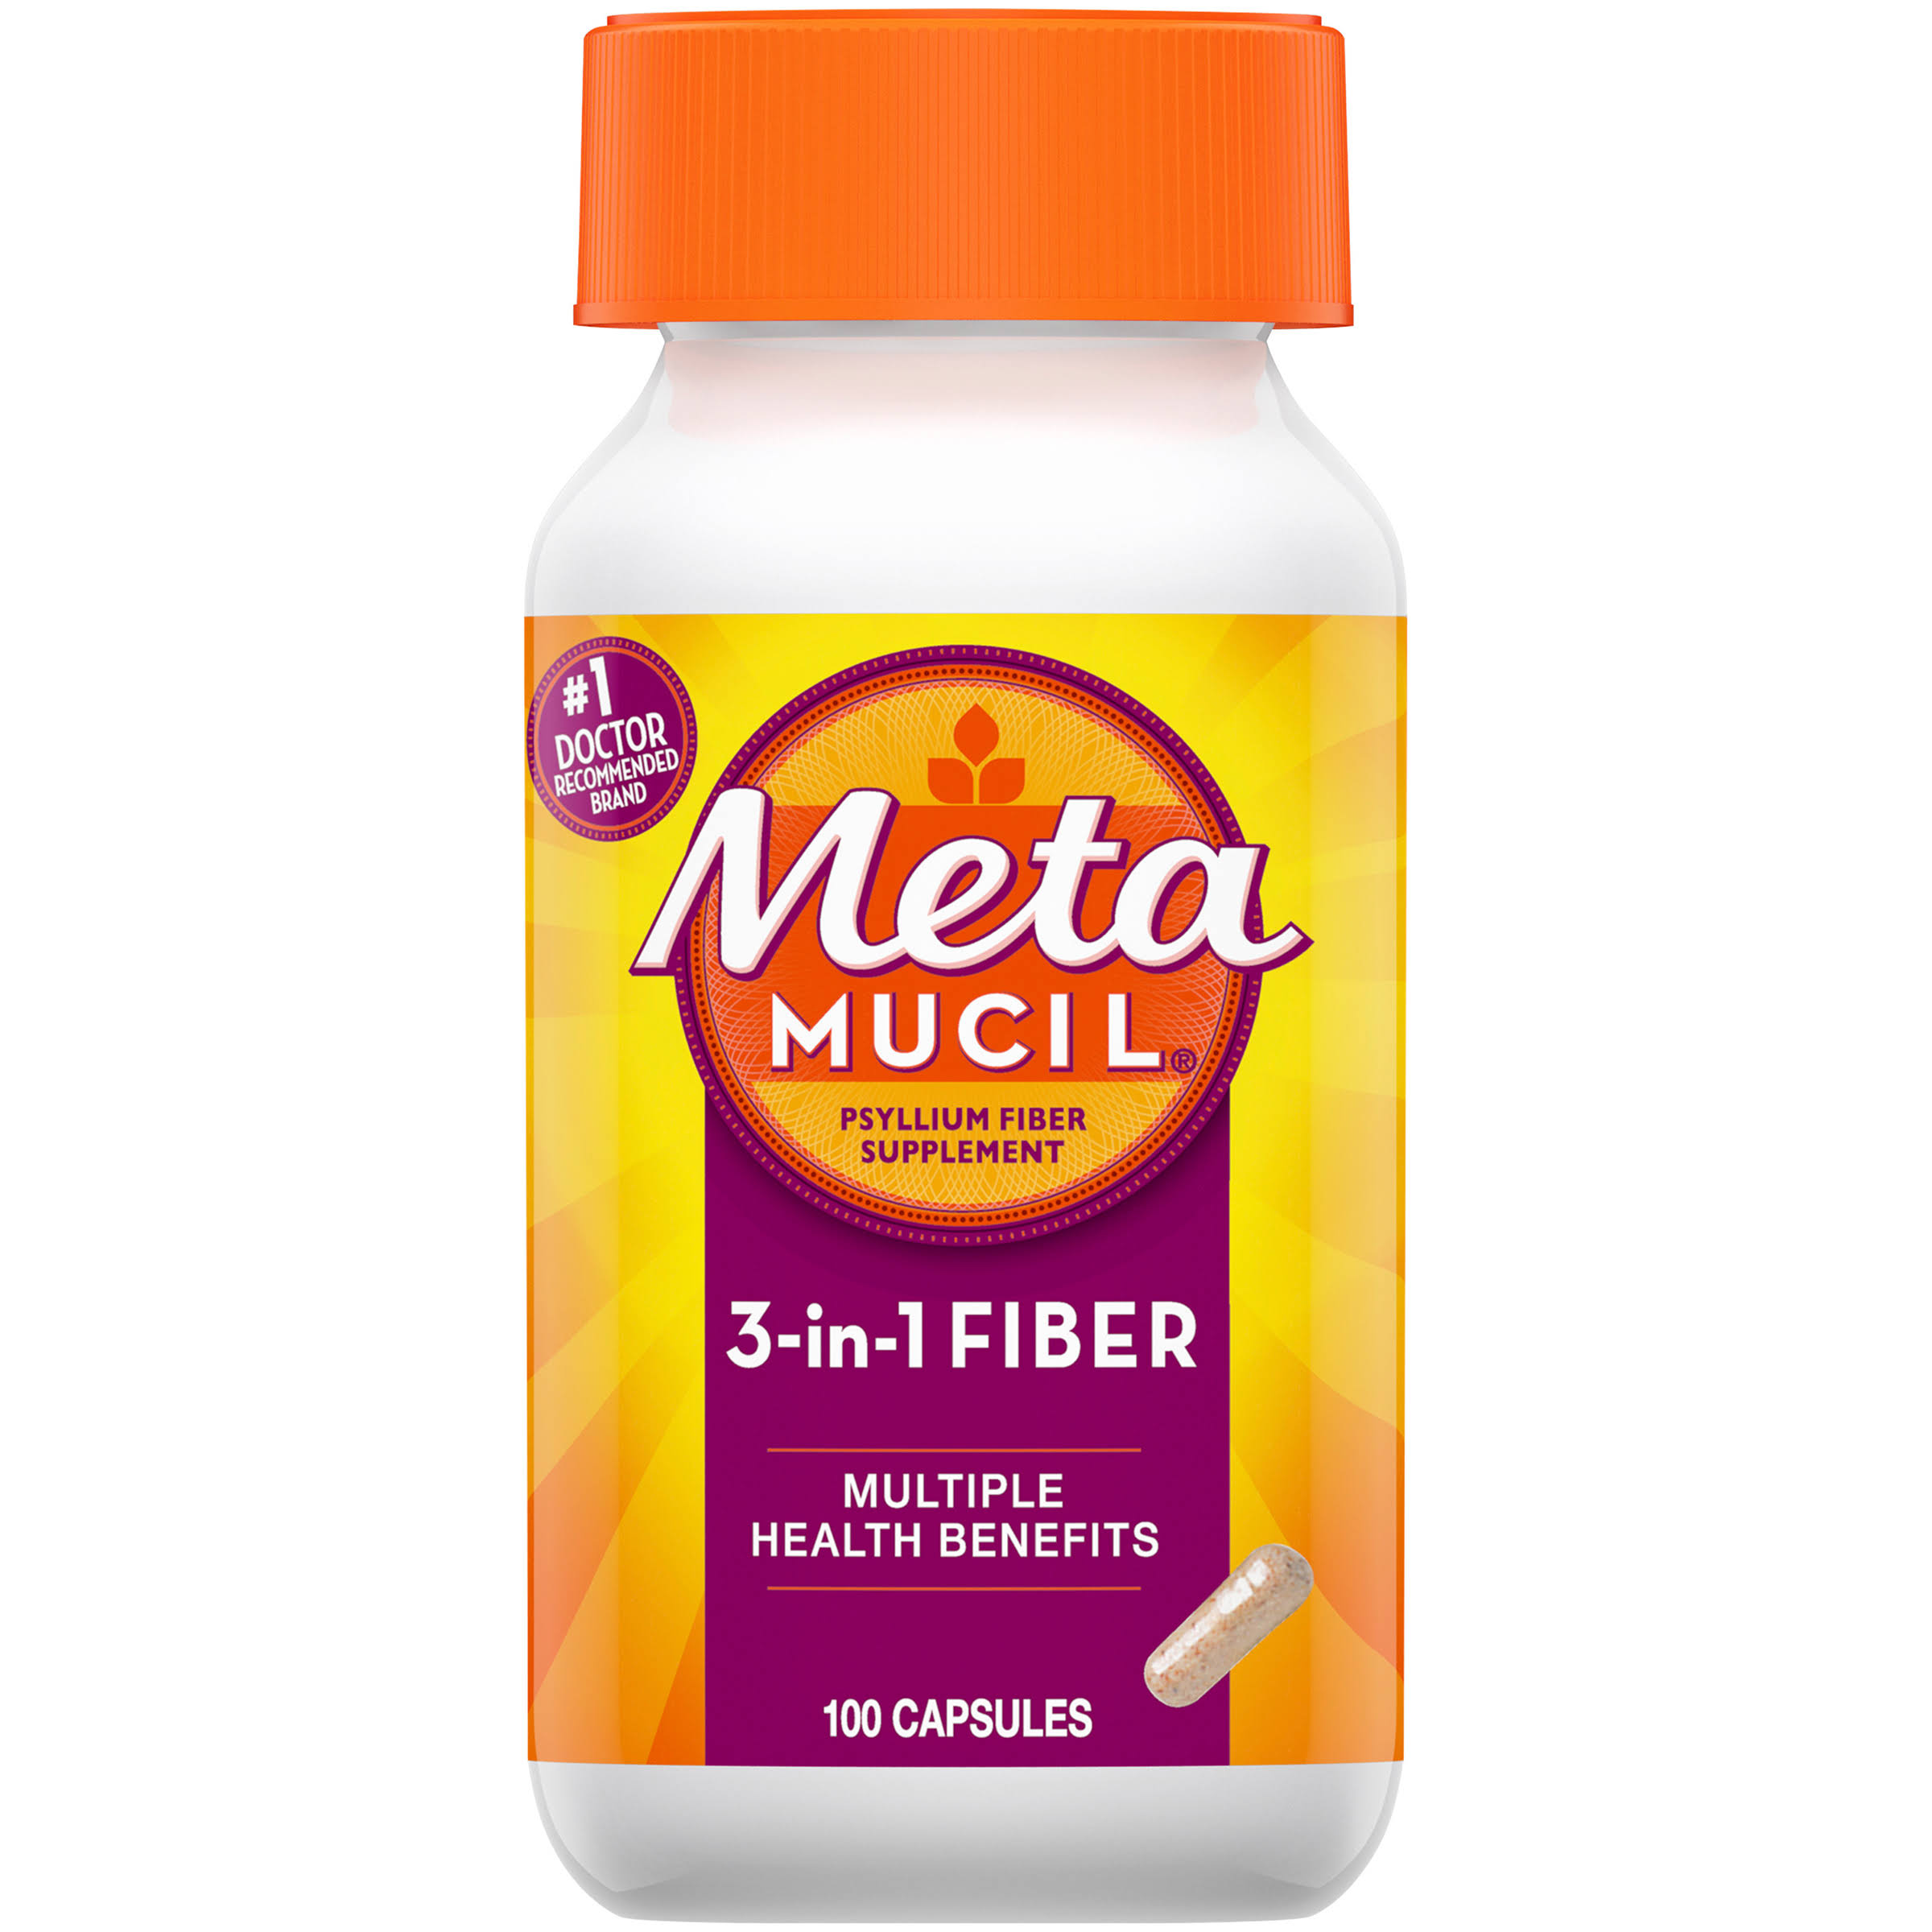 Metamucil 3 in 1 Multi Health Psyllium Fiber Capsules - 100ct